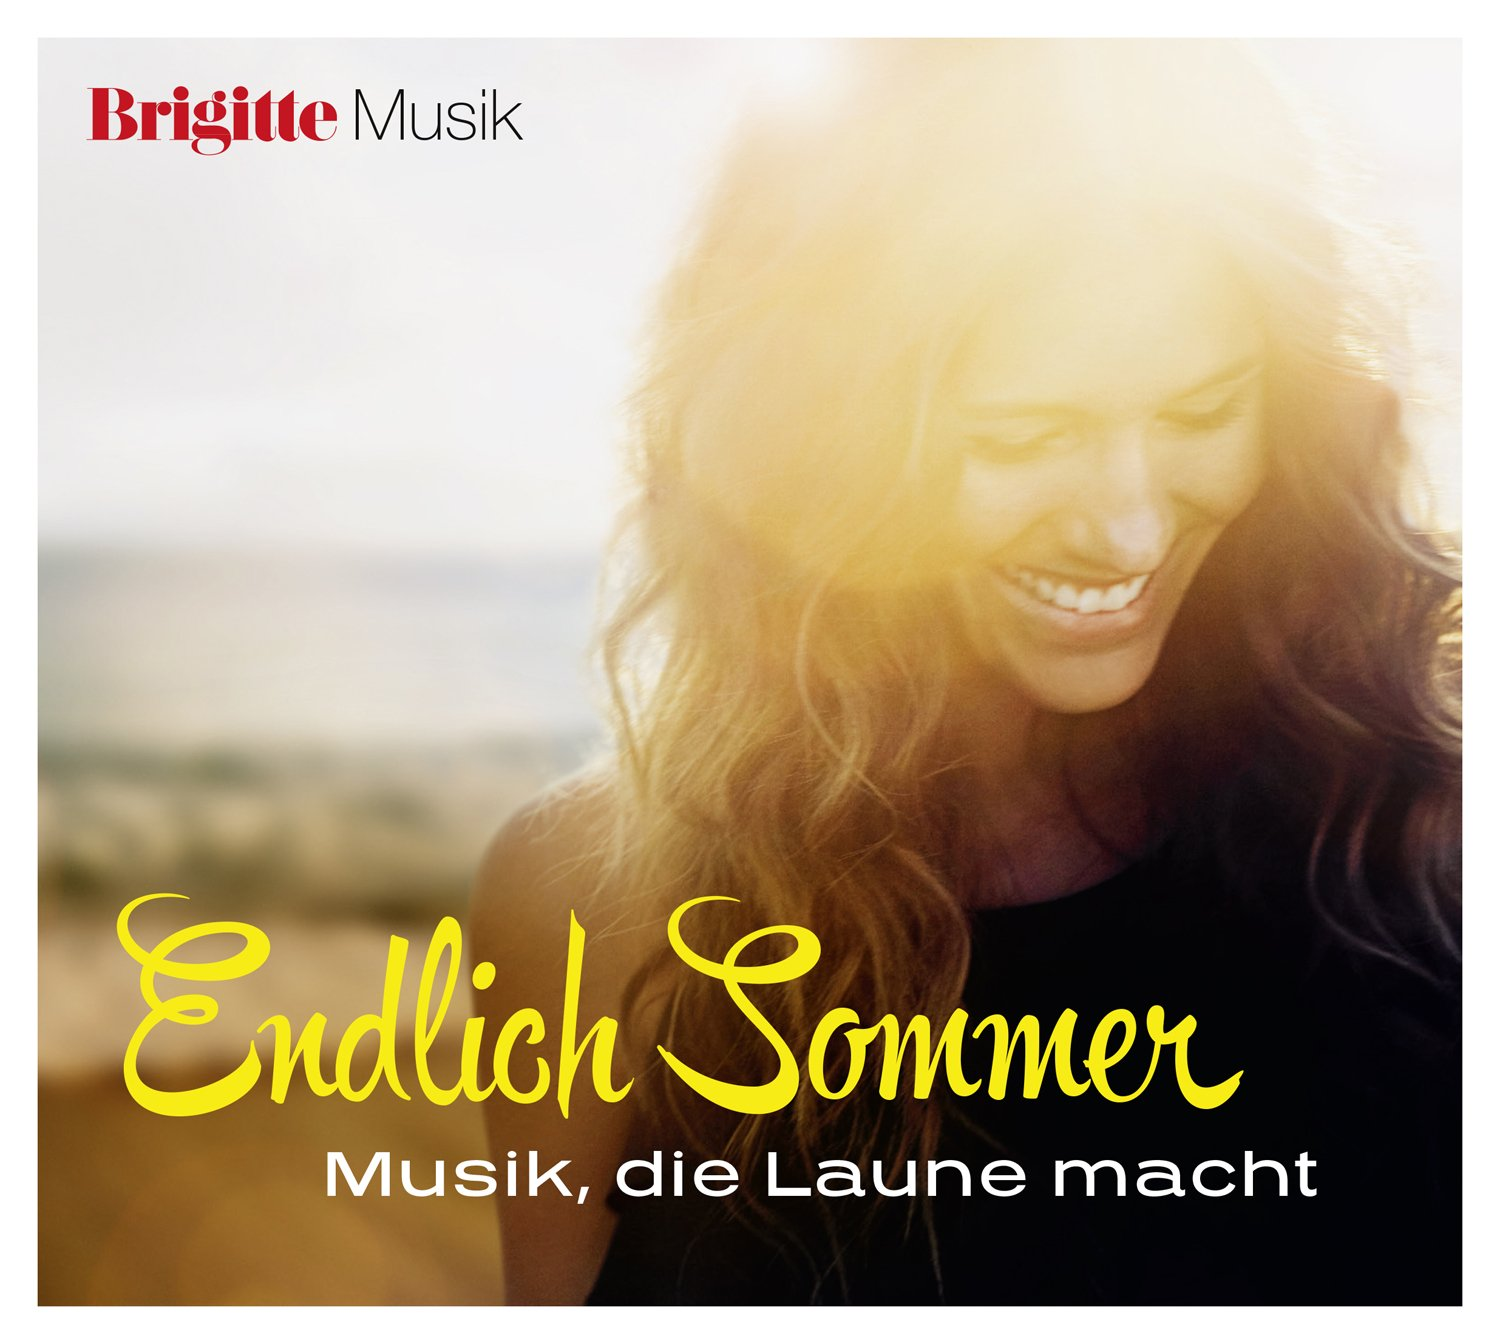 VA-Brigitte Musik (Endlich Sommer)-2CD-2014-CARDiNALS Download